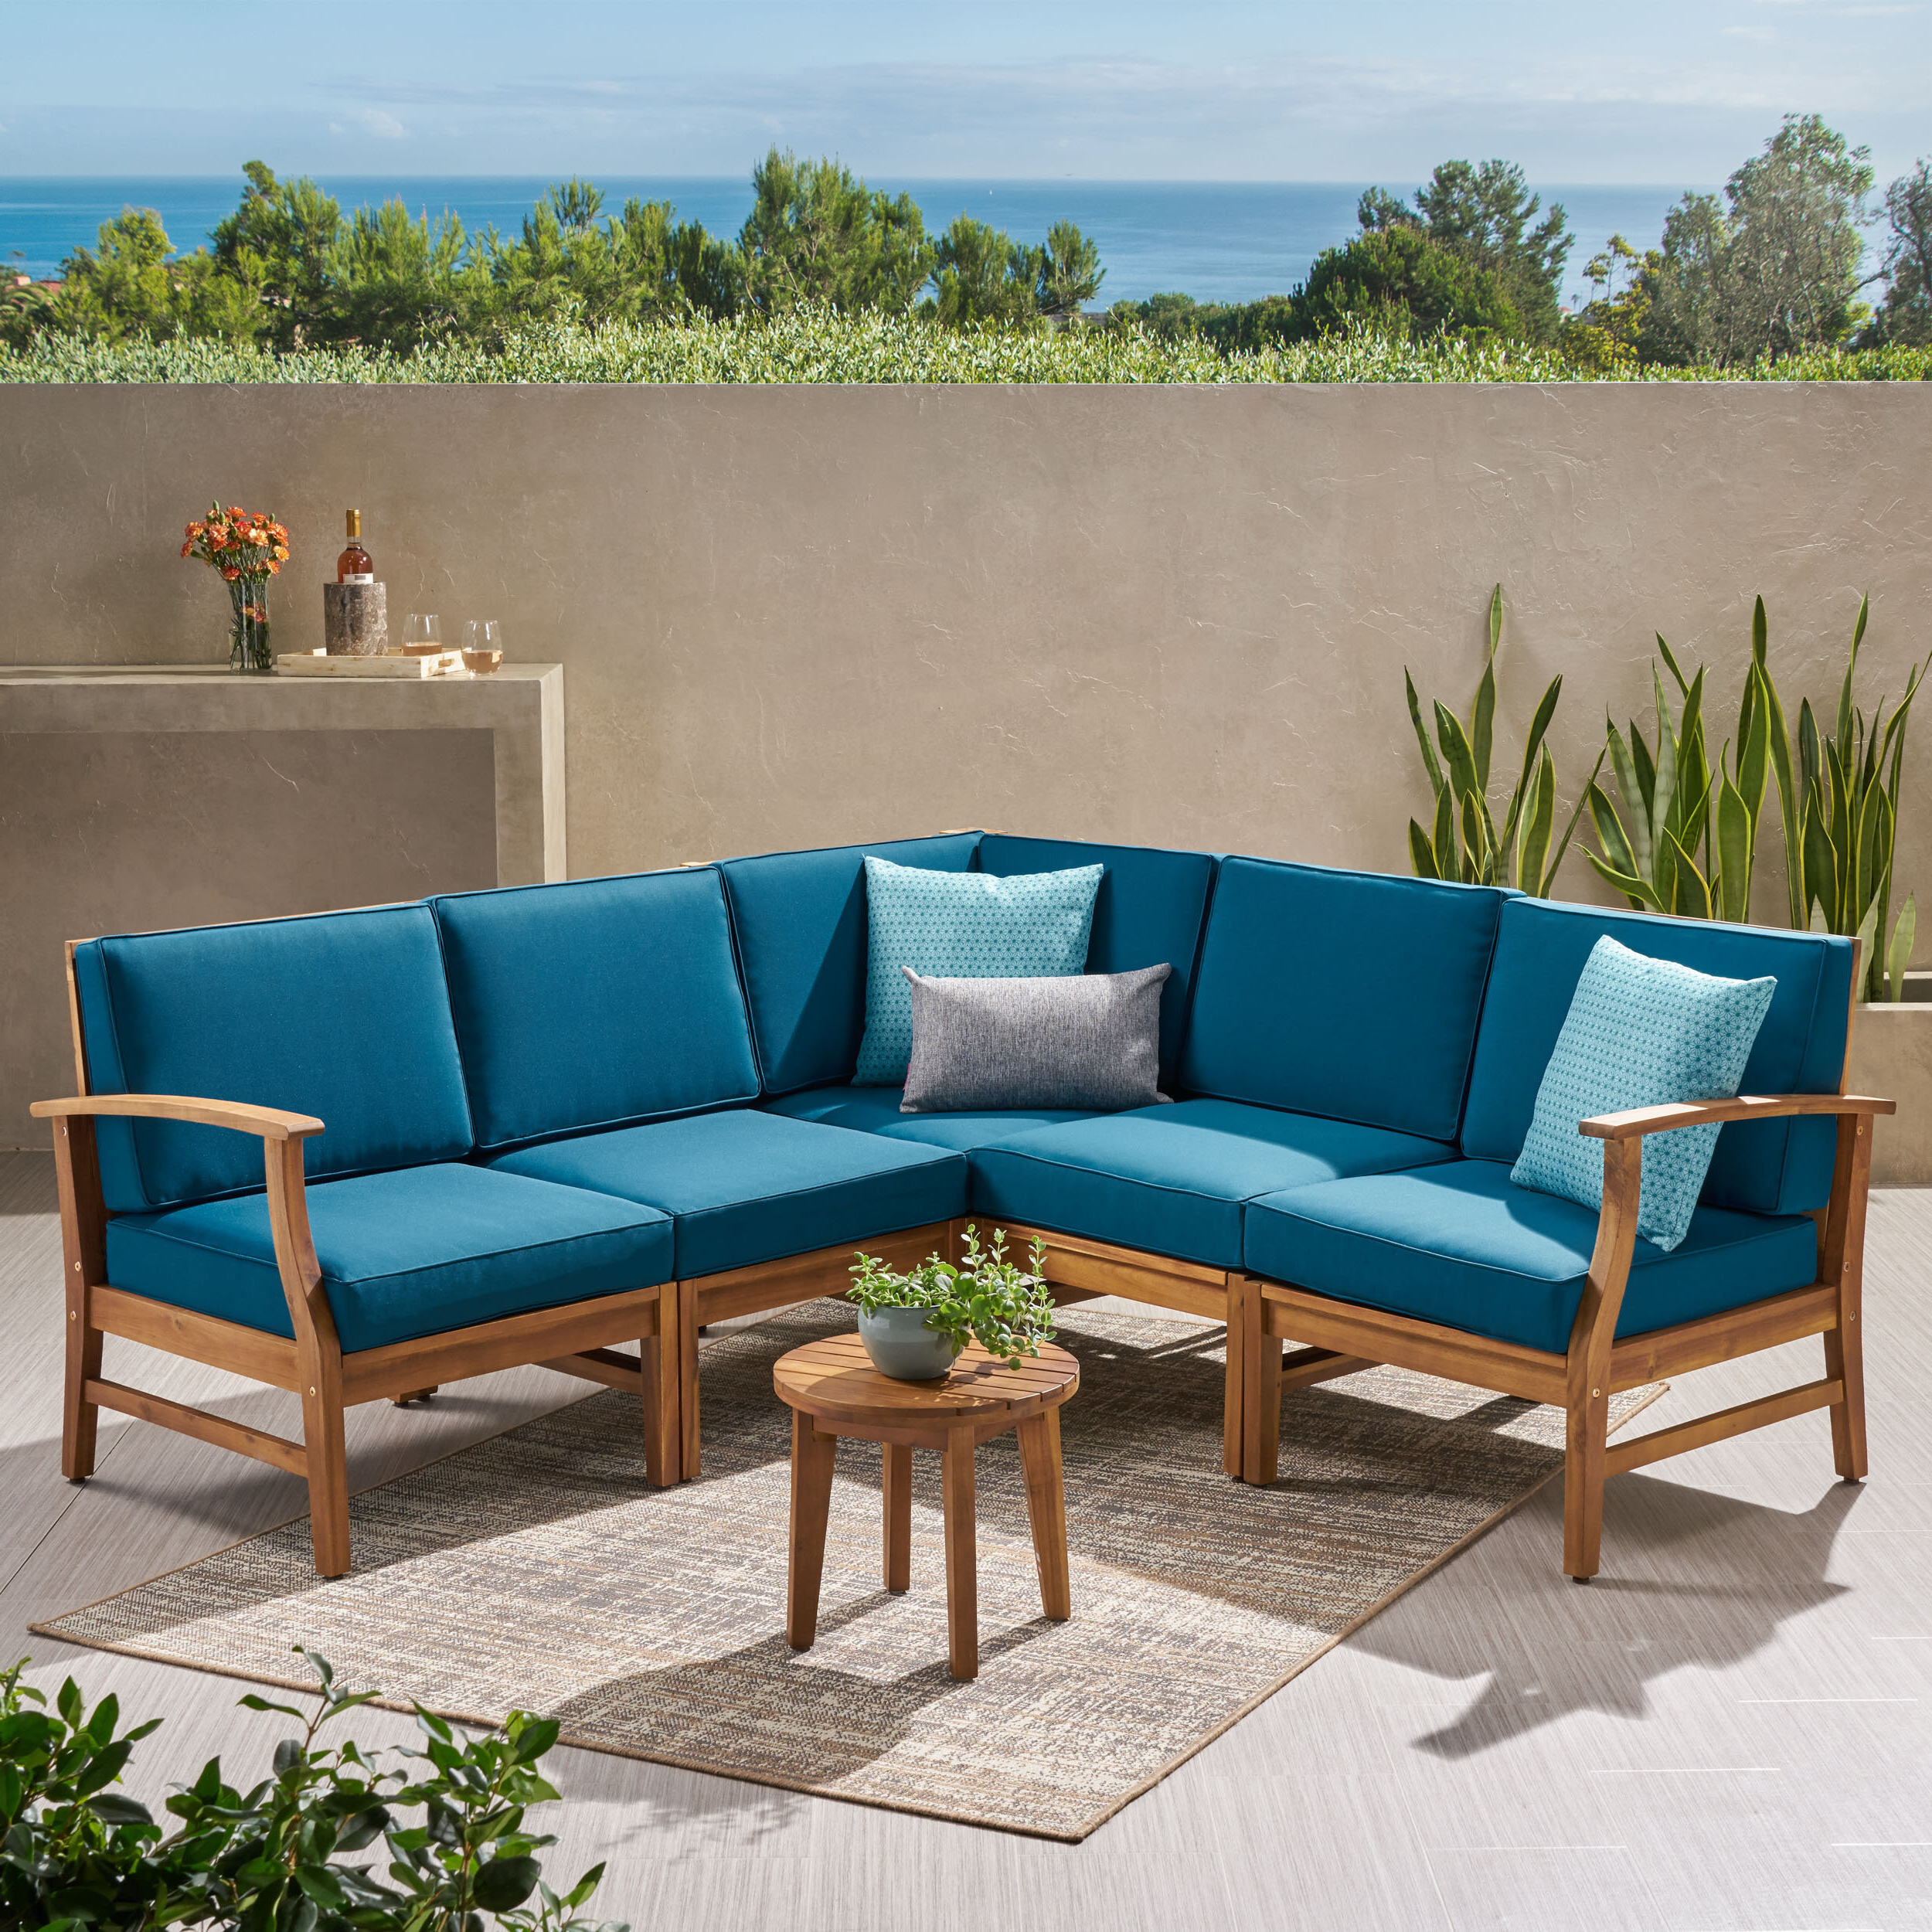 2020 Antonia Teak Patio Sectional With Cushions For Hursey Patio Sofas (View 17 of 20)